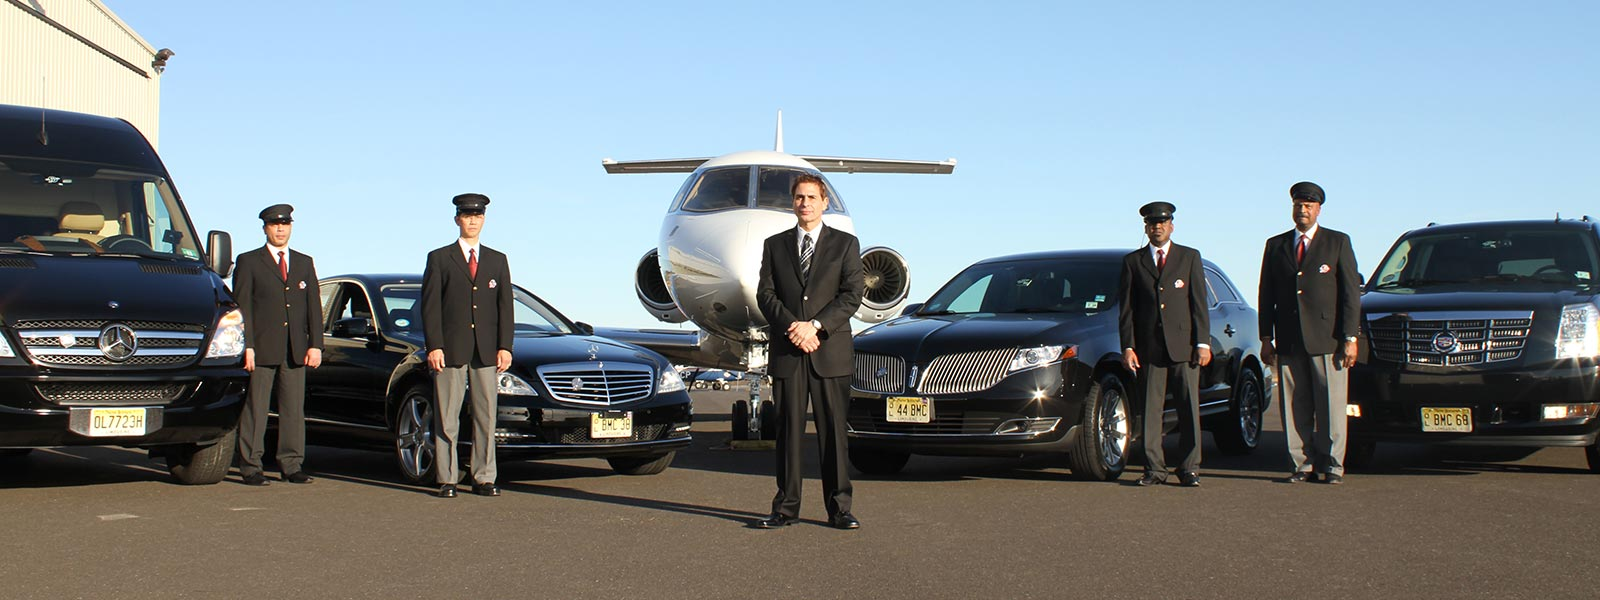 Best Chauffeured Limo Service